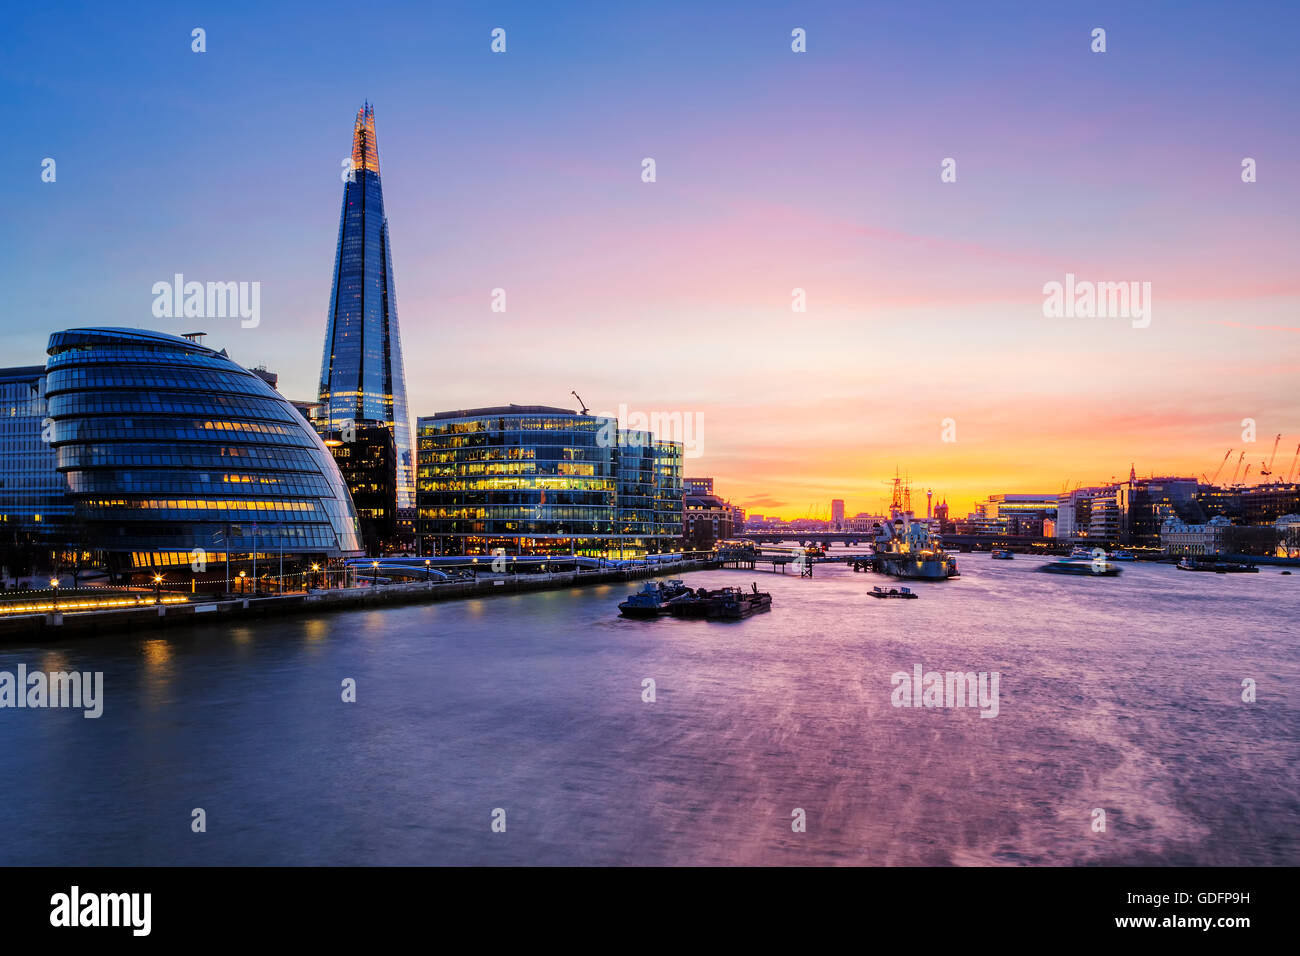 View of London city at sunset. - Stock Image